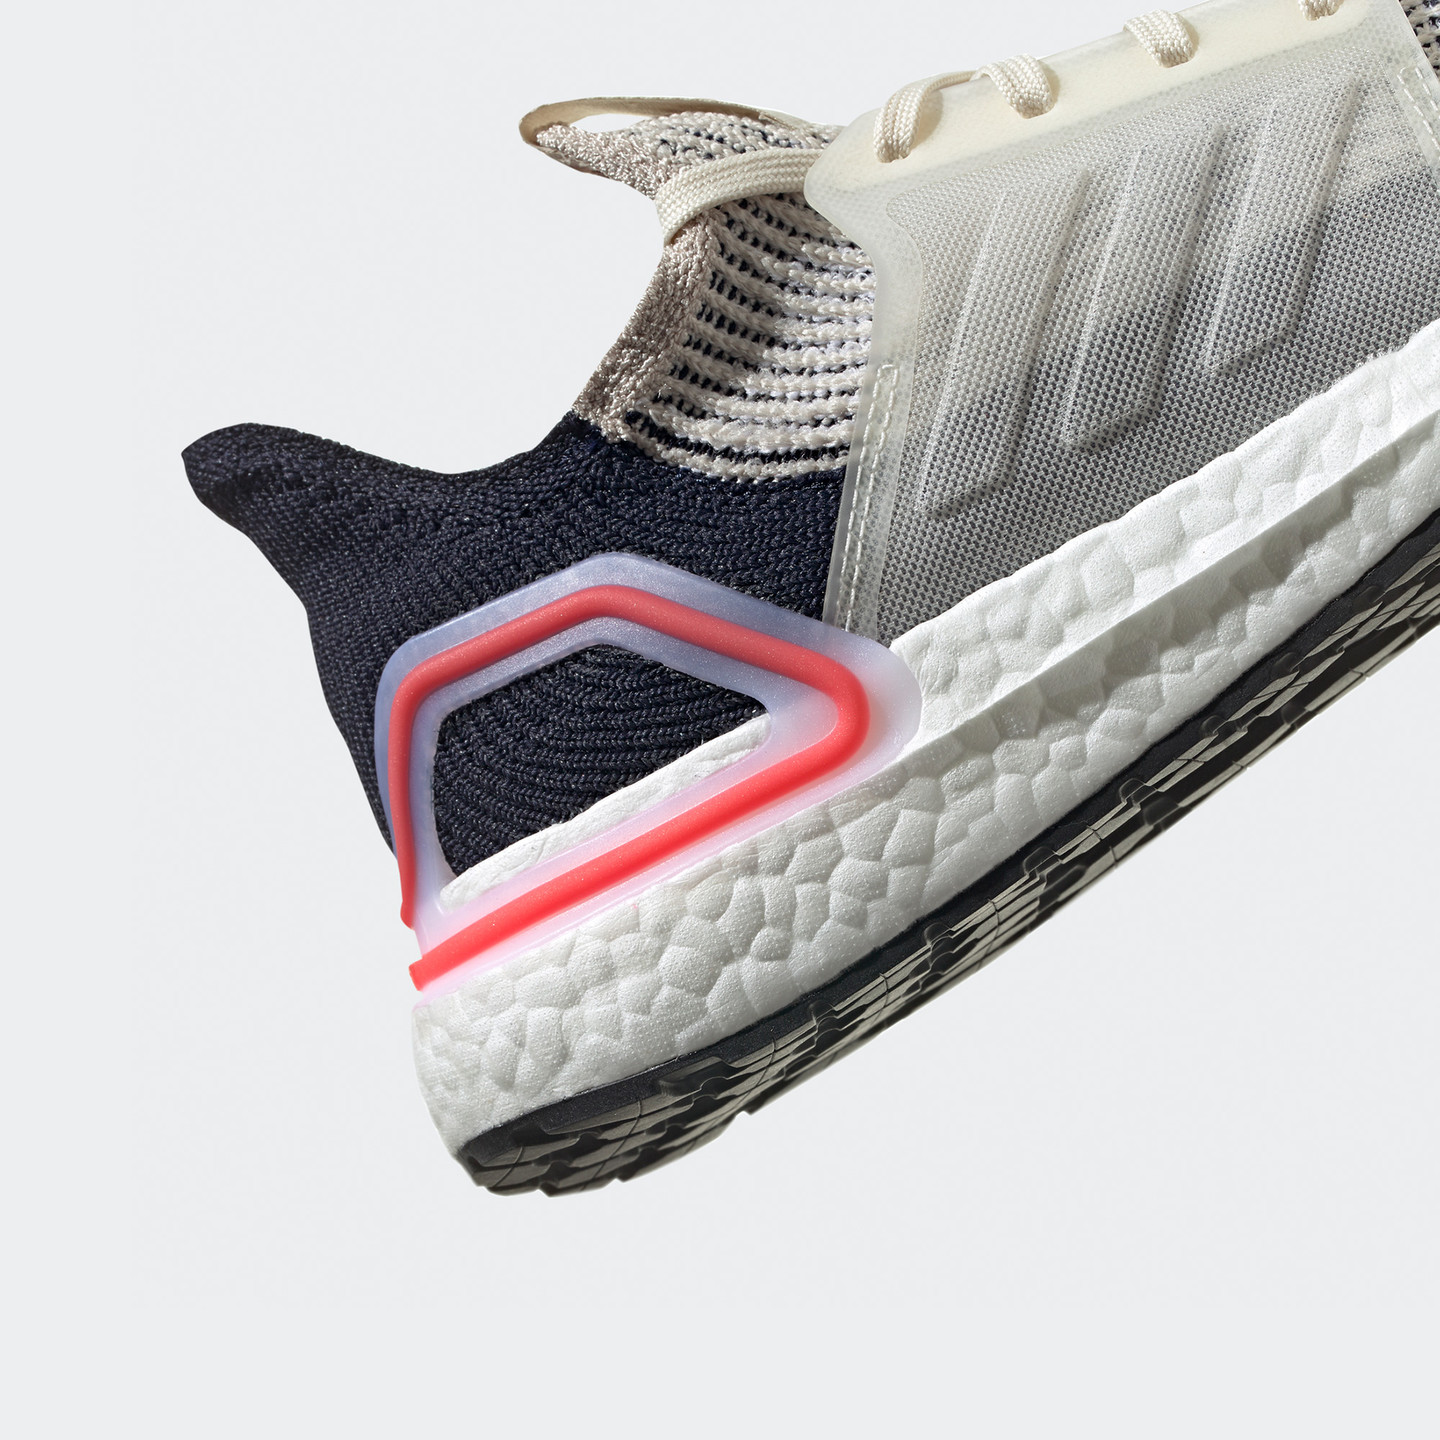 Adidas Ultra Boost 19 Beige / Navy / Safety Red B37705